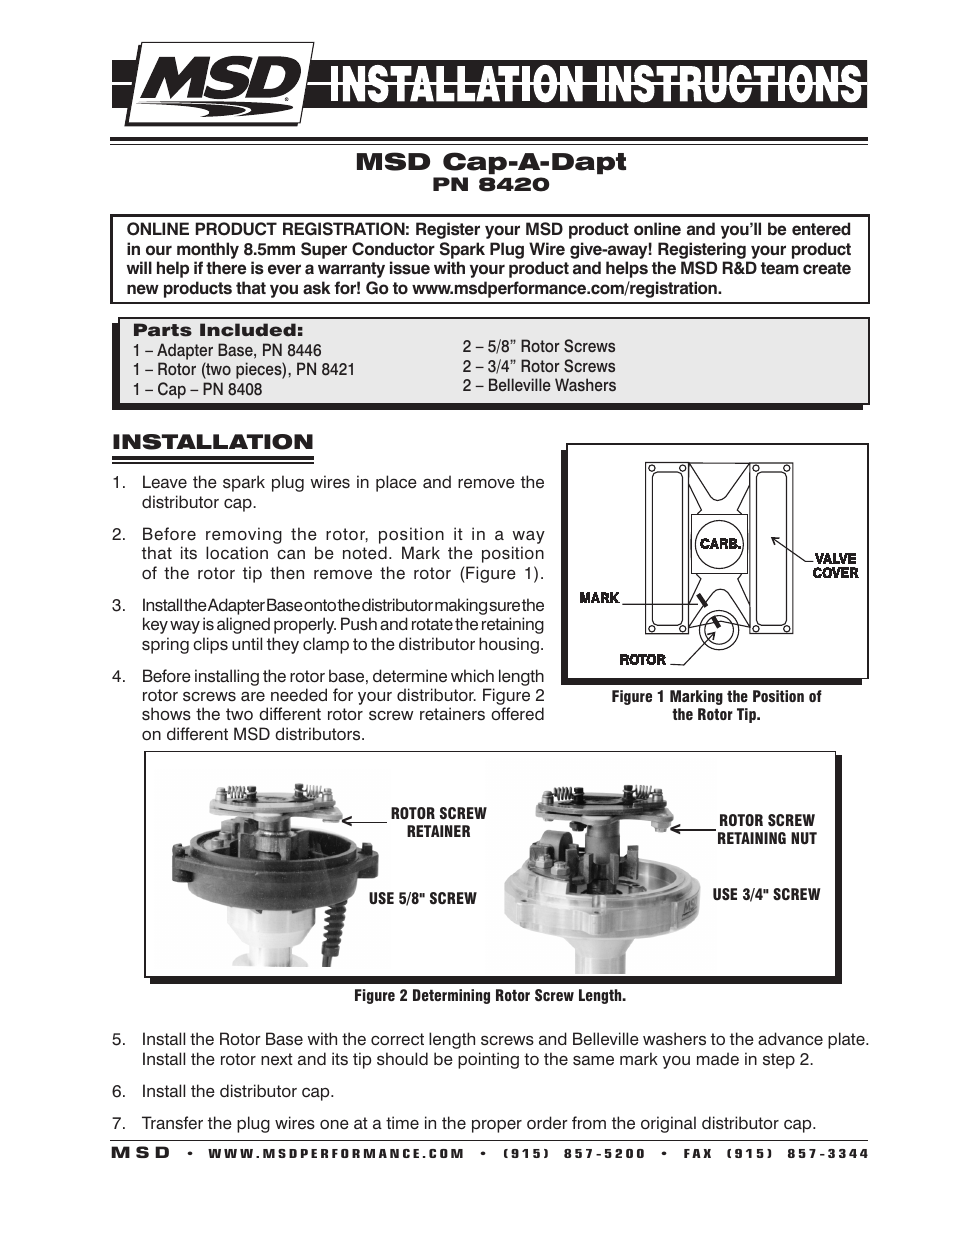 Distributor cap user manuals array msd 8420 cap a dapt kit for chevy v8 installation user manual 2 rh fandeluxe Images